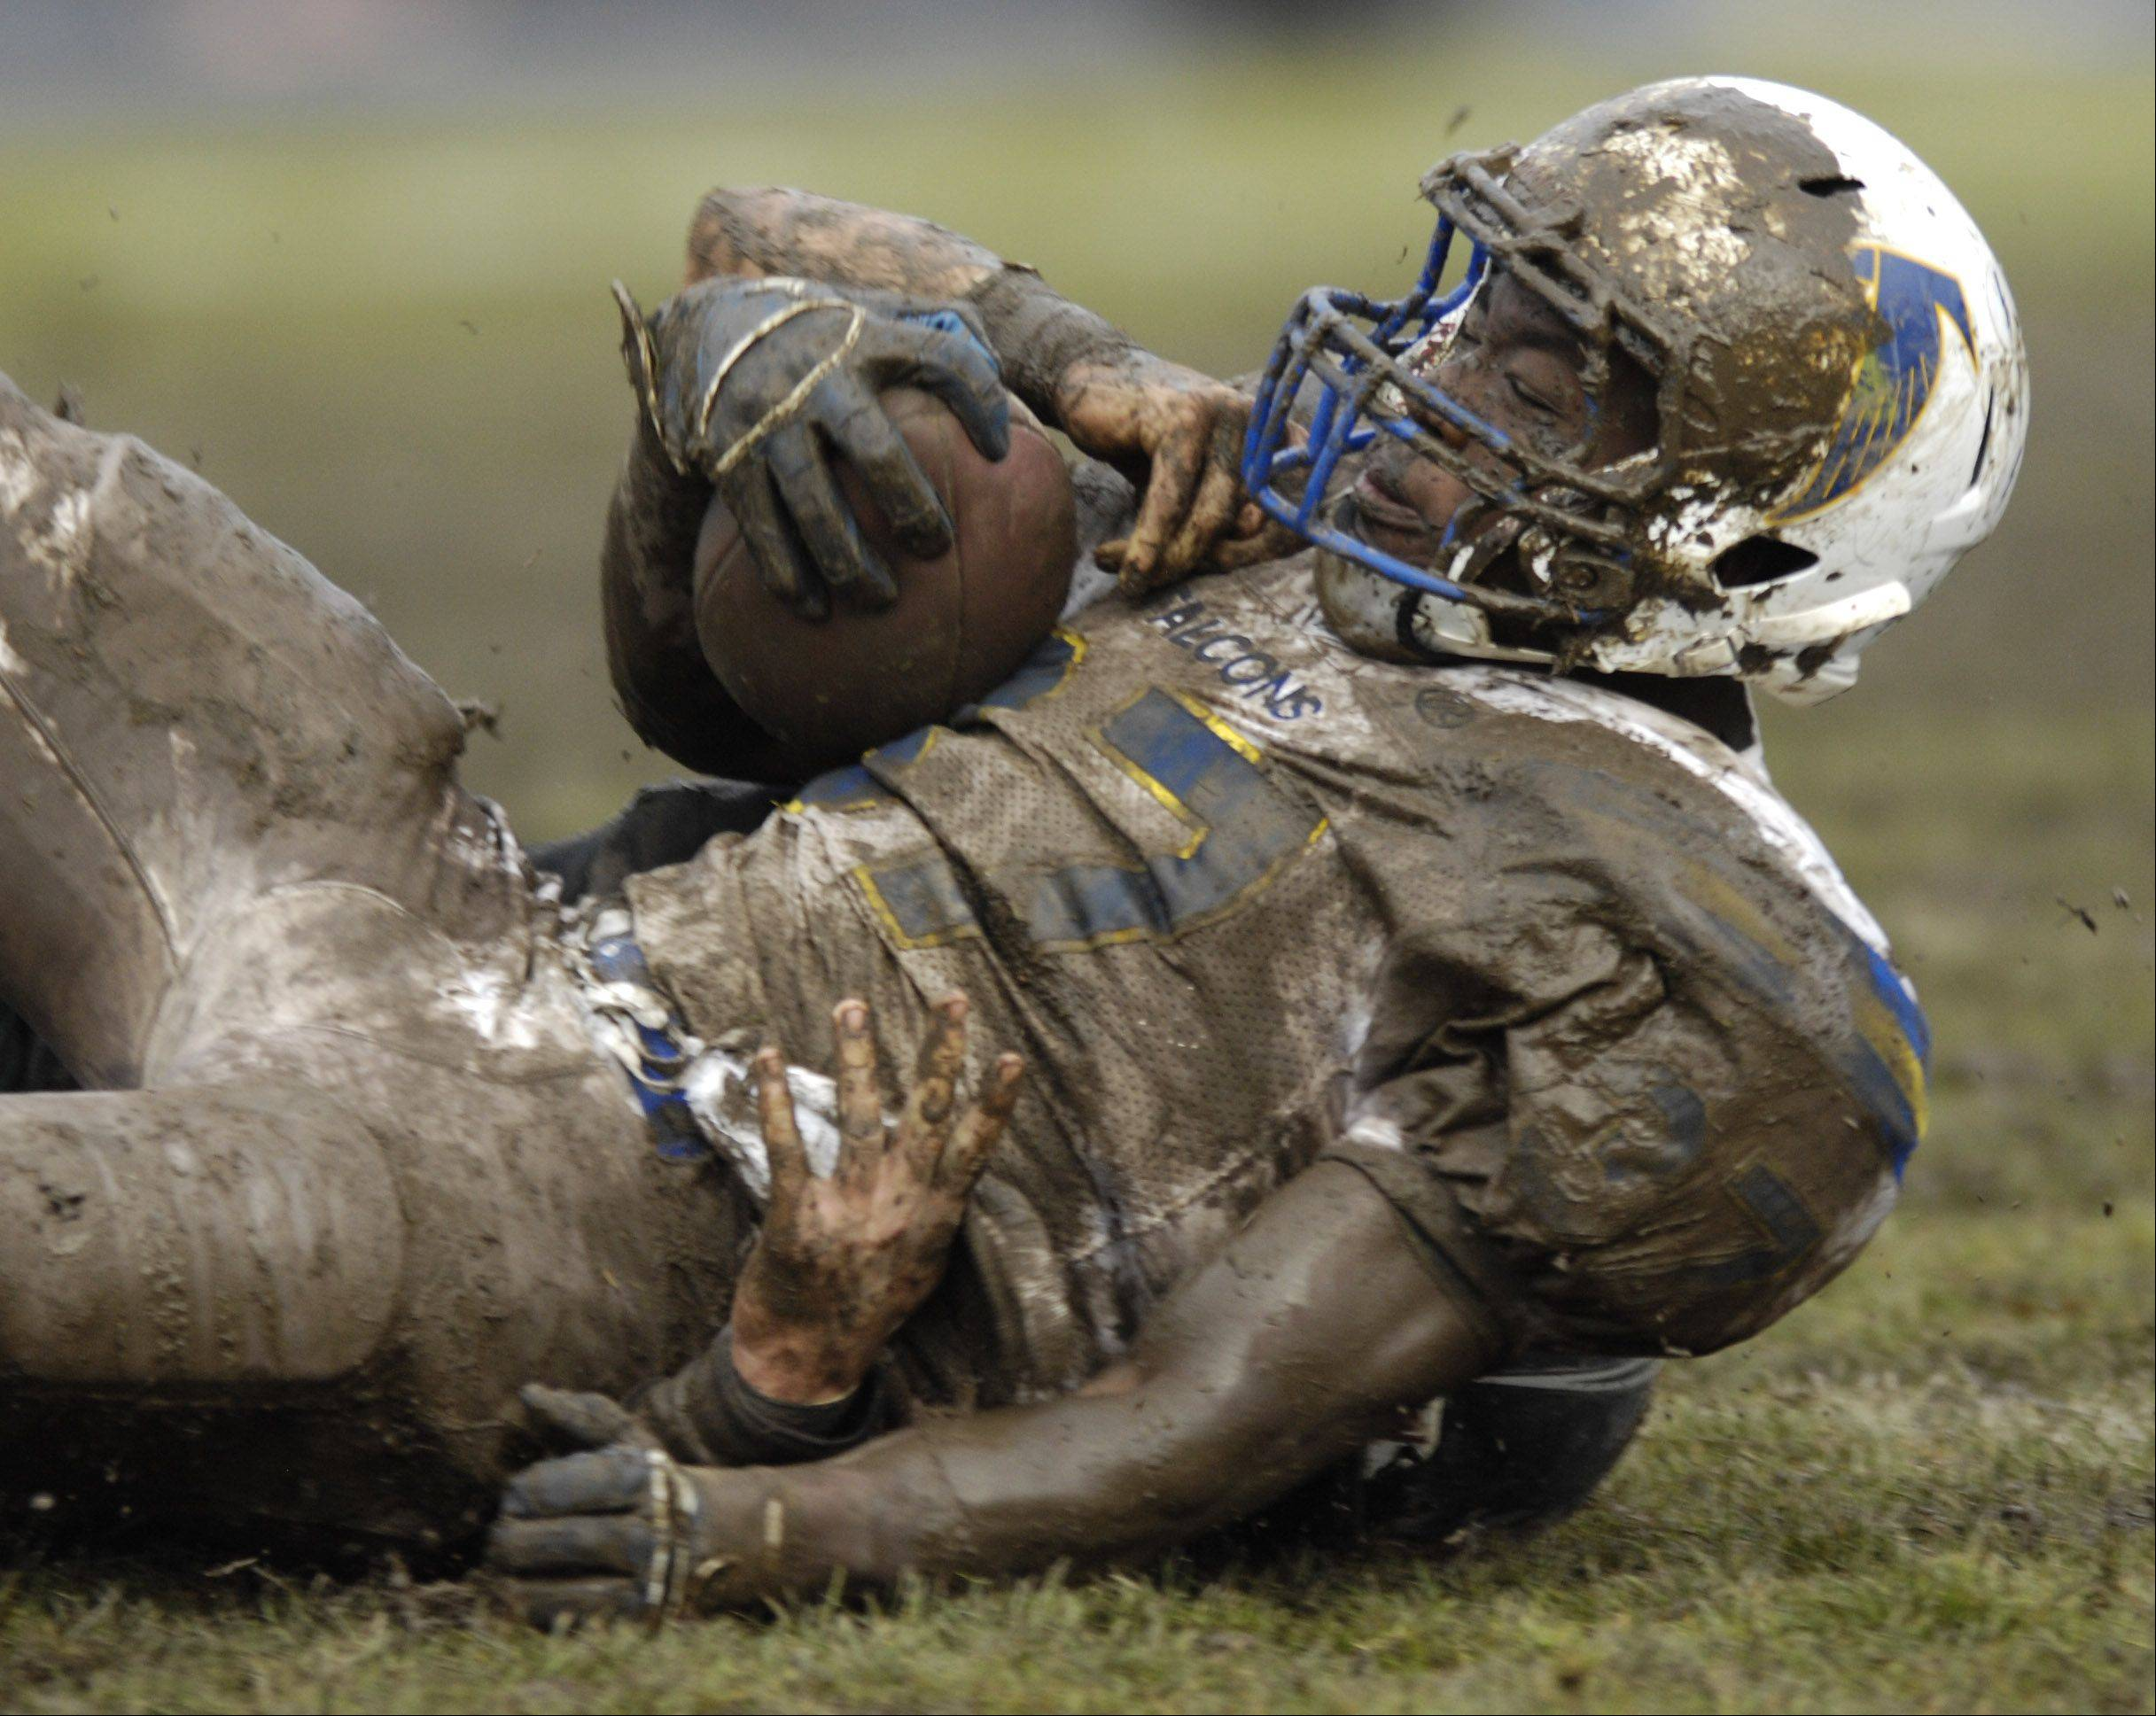 Wheaton North running back Patrick Sharp is covered with mud after being tackled during Saturday's game against Glenbard West.